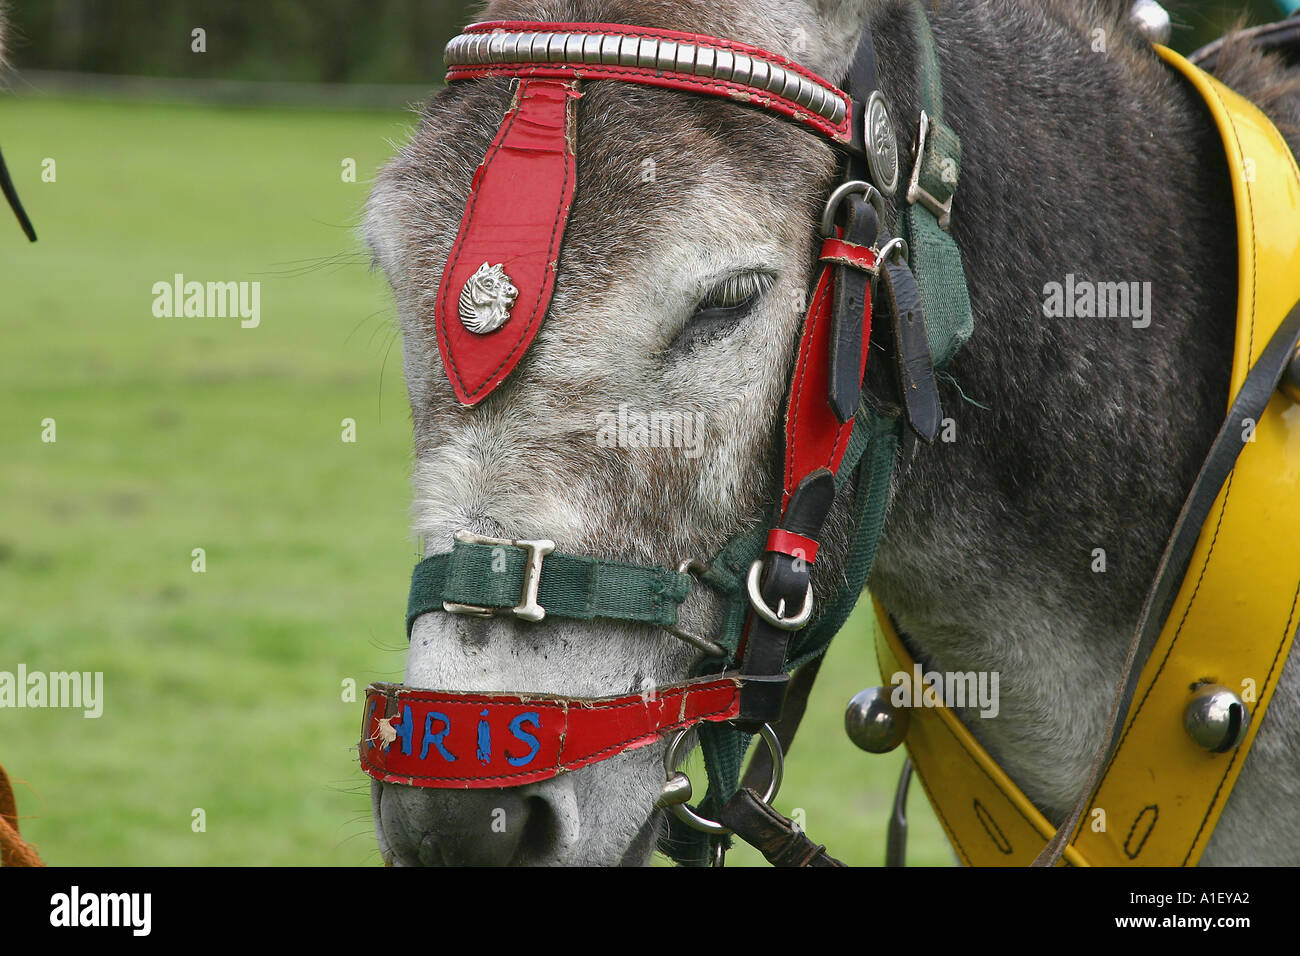 Donkey on beach for children to rid at Bridlington North Yorkshire England Stock Photo